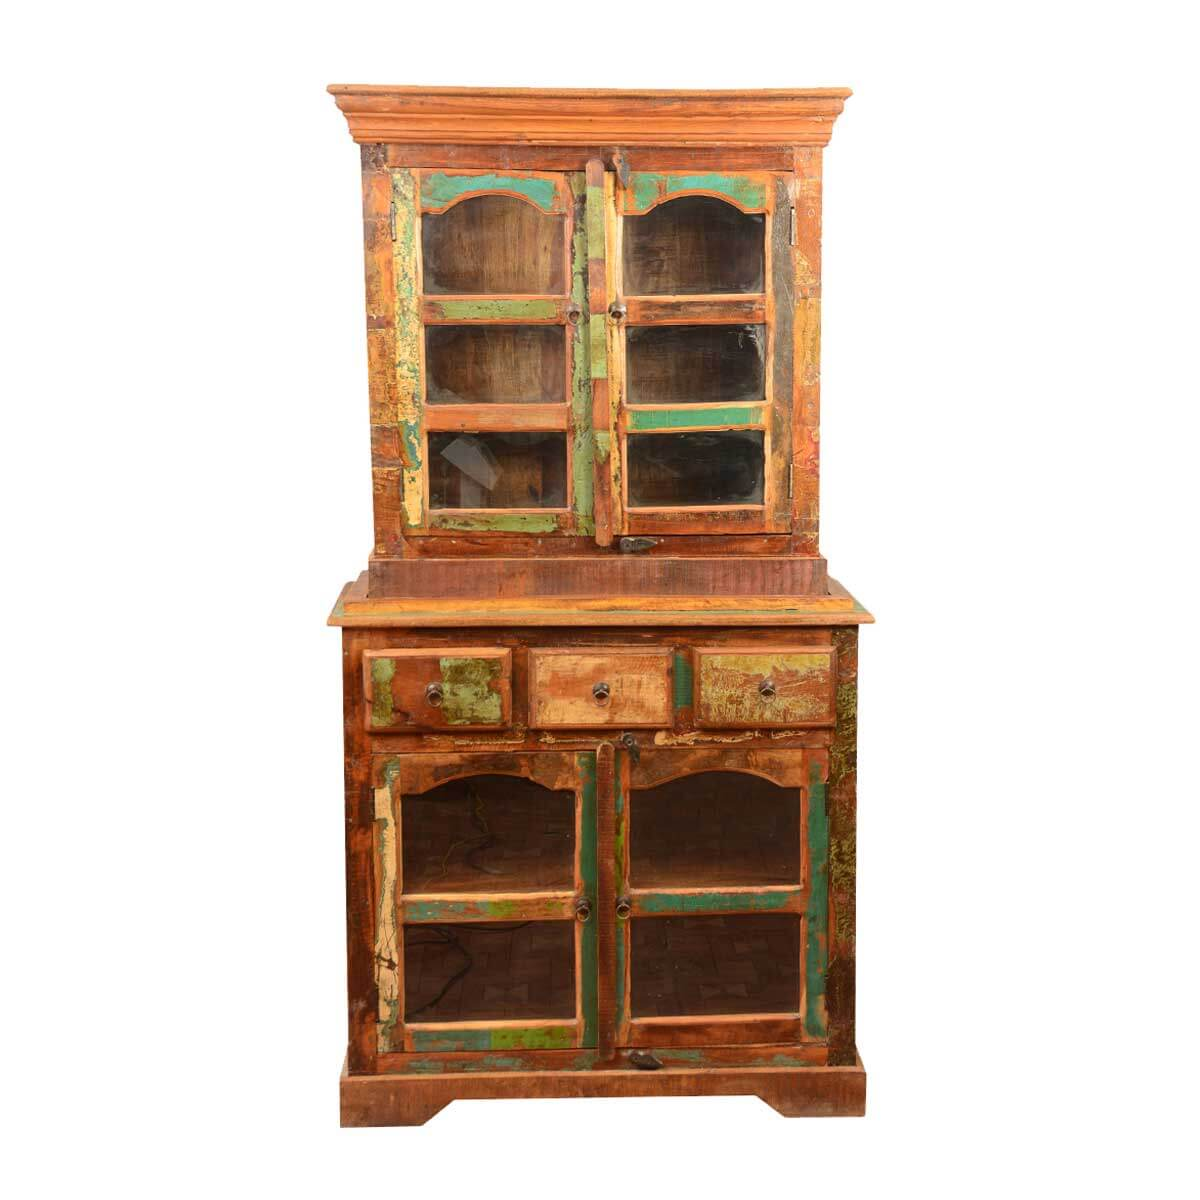 and with free buffet wood hutch black overstock today home hiawatha garden pine canopy top shipping product